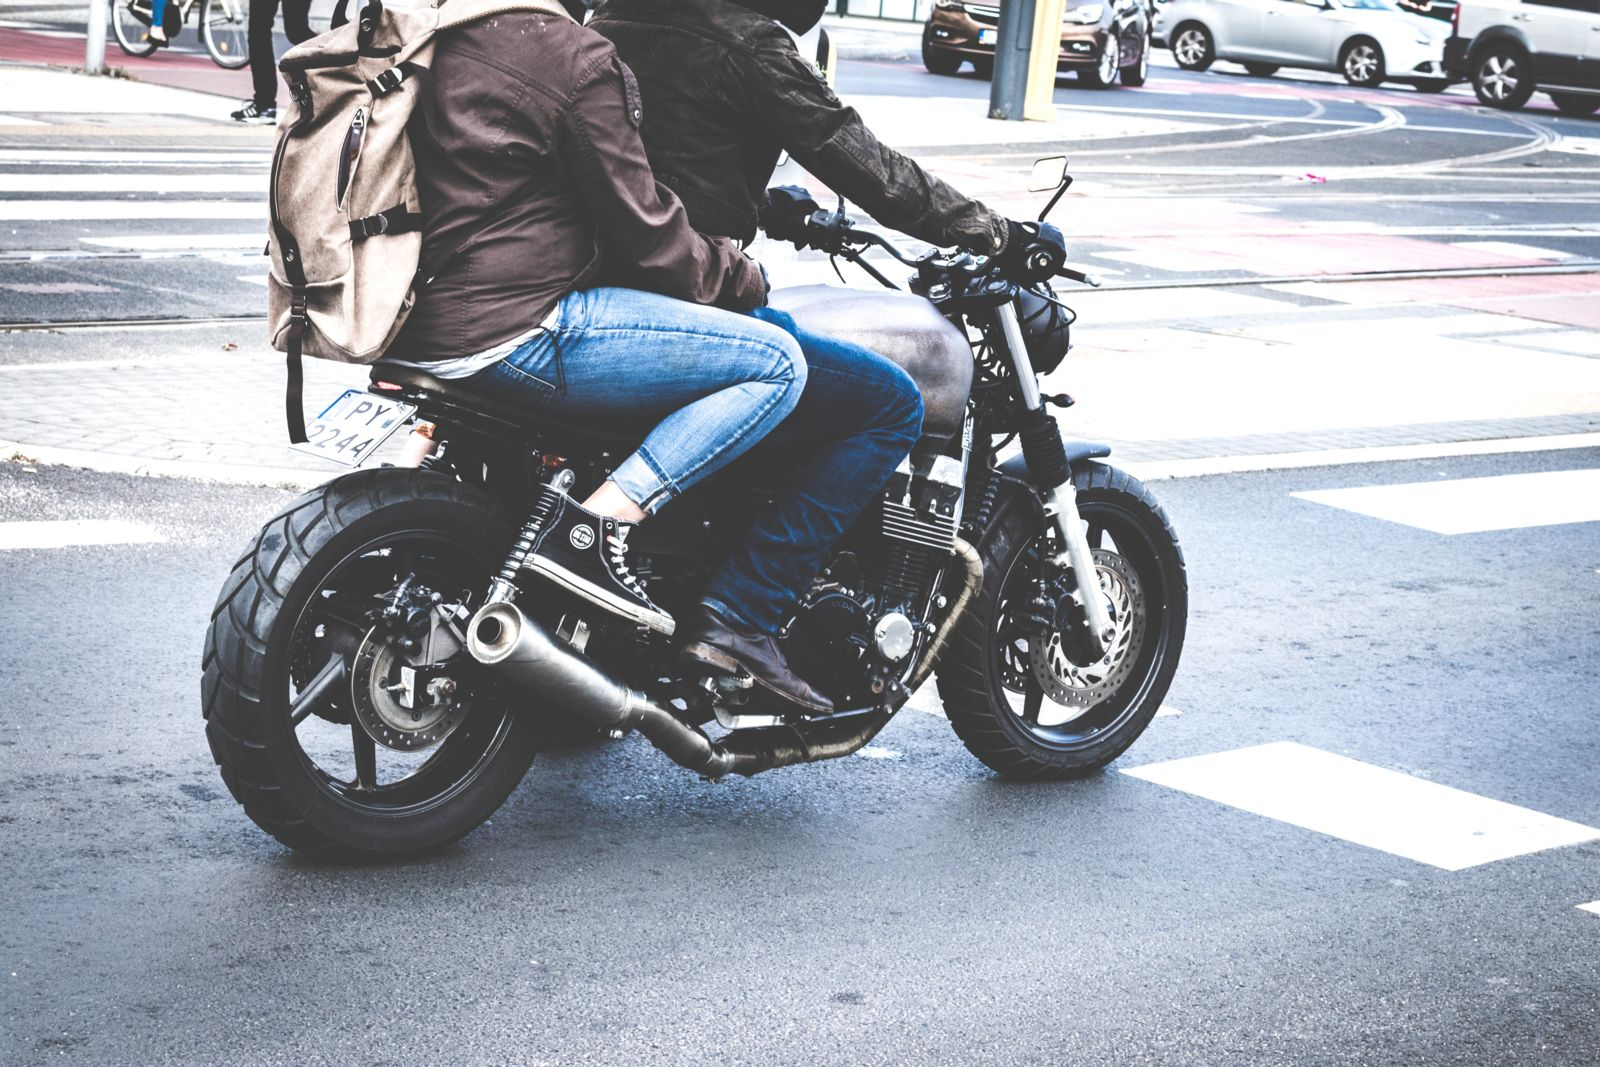 Wearing Helmet While Driving a Motorcycle